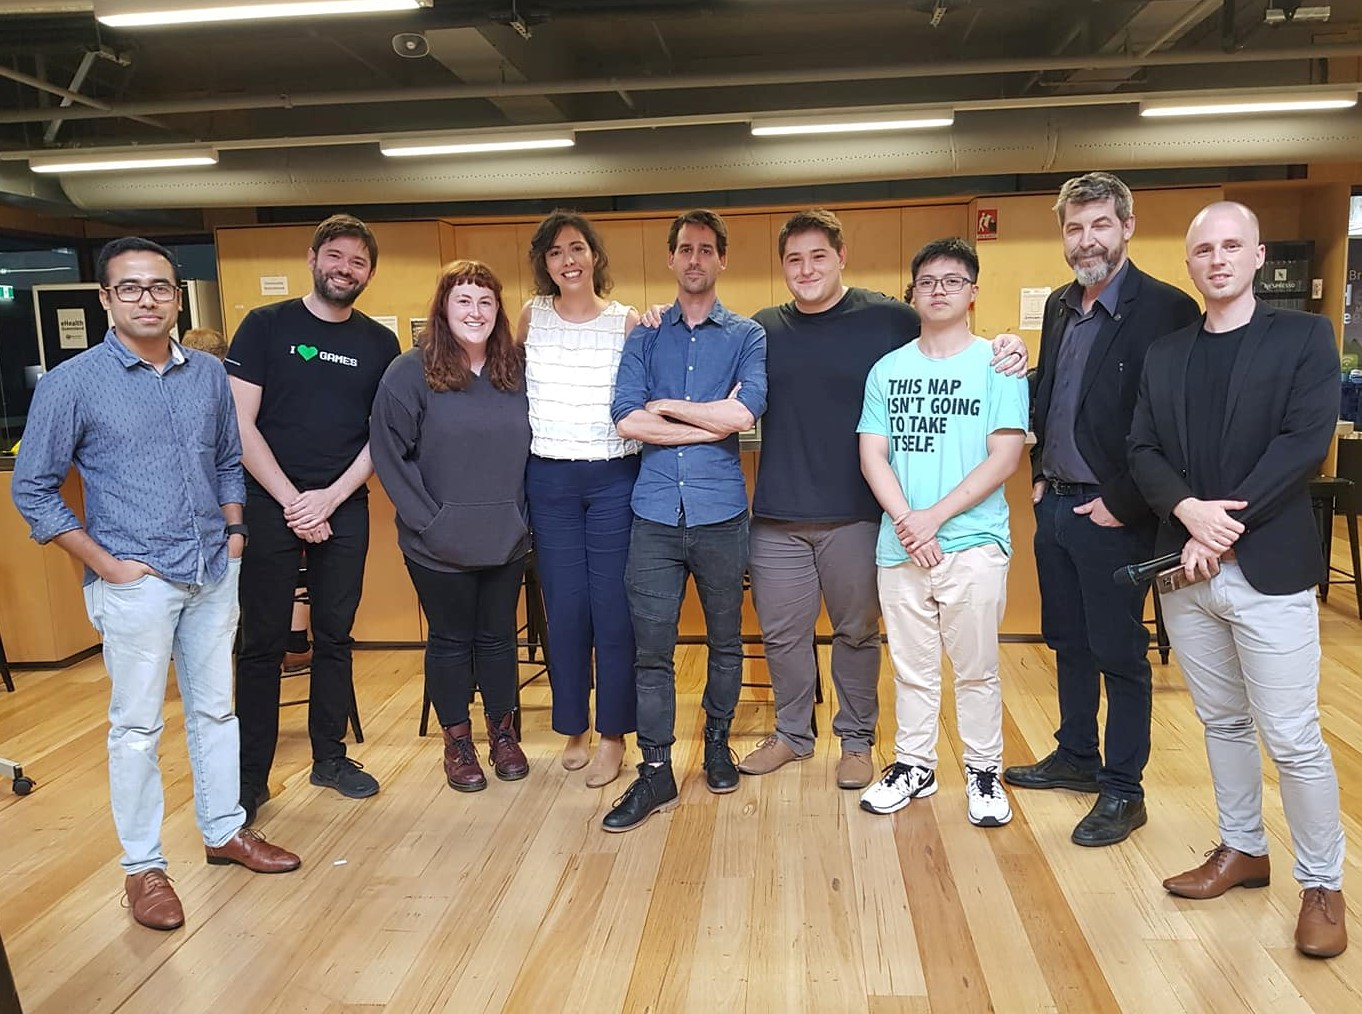 QUT alumni Lexi and Thomas and QUT student Daniel standing with the Queensland VR Hackathon organisers.